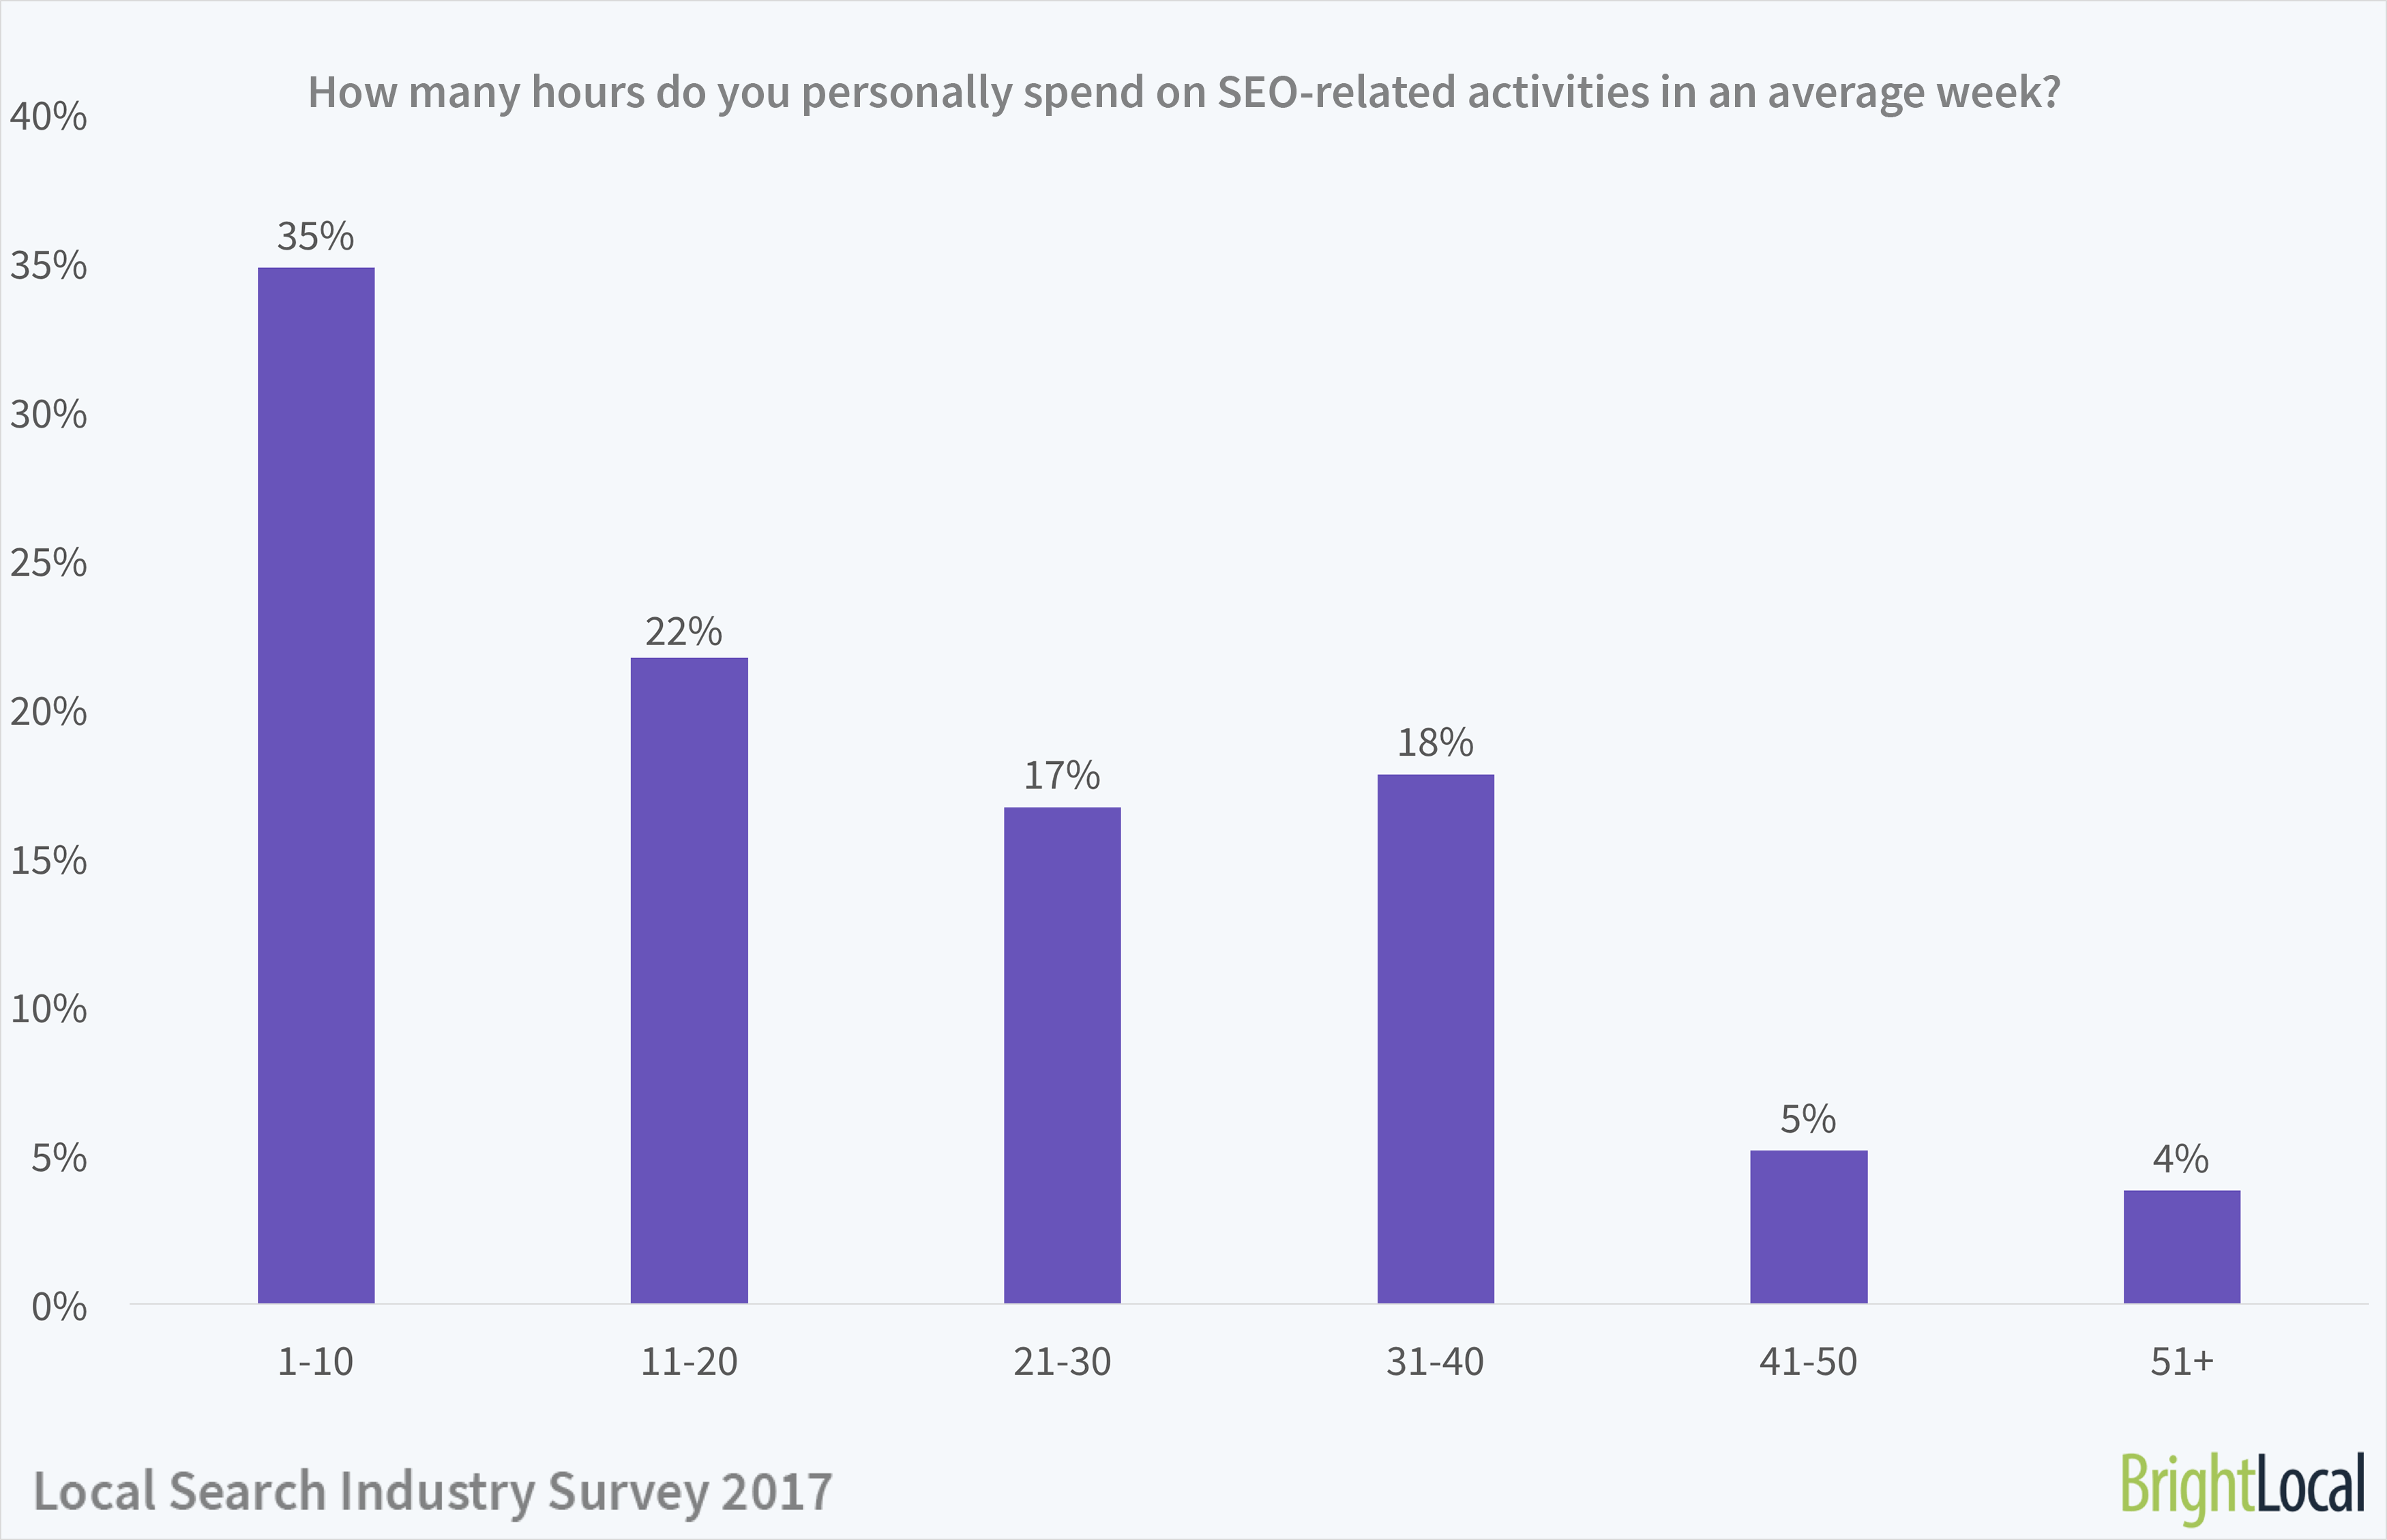 Local Search Industry Survey | Number of hour spent on SEO